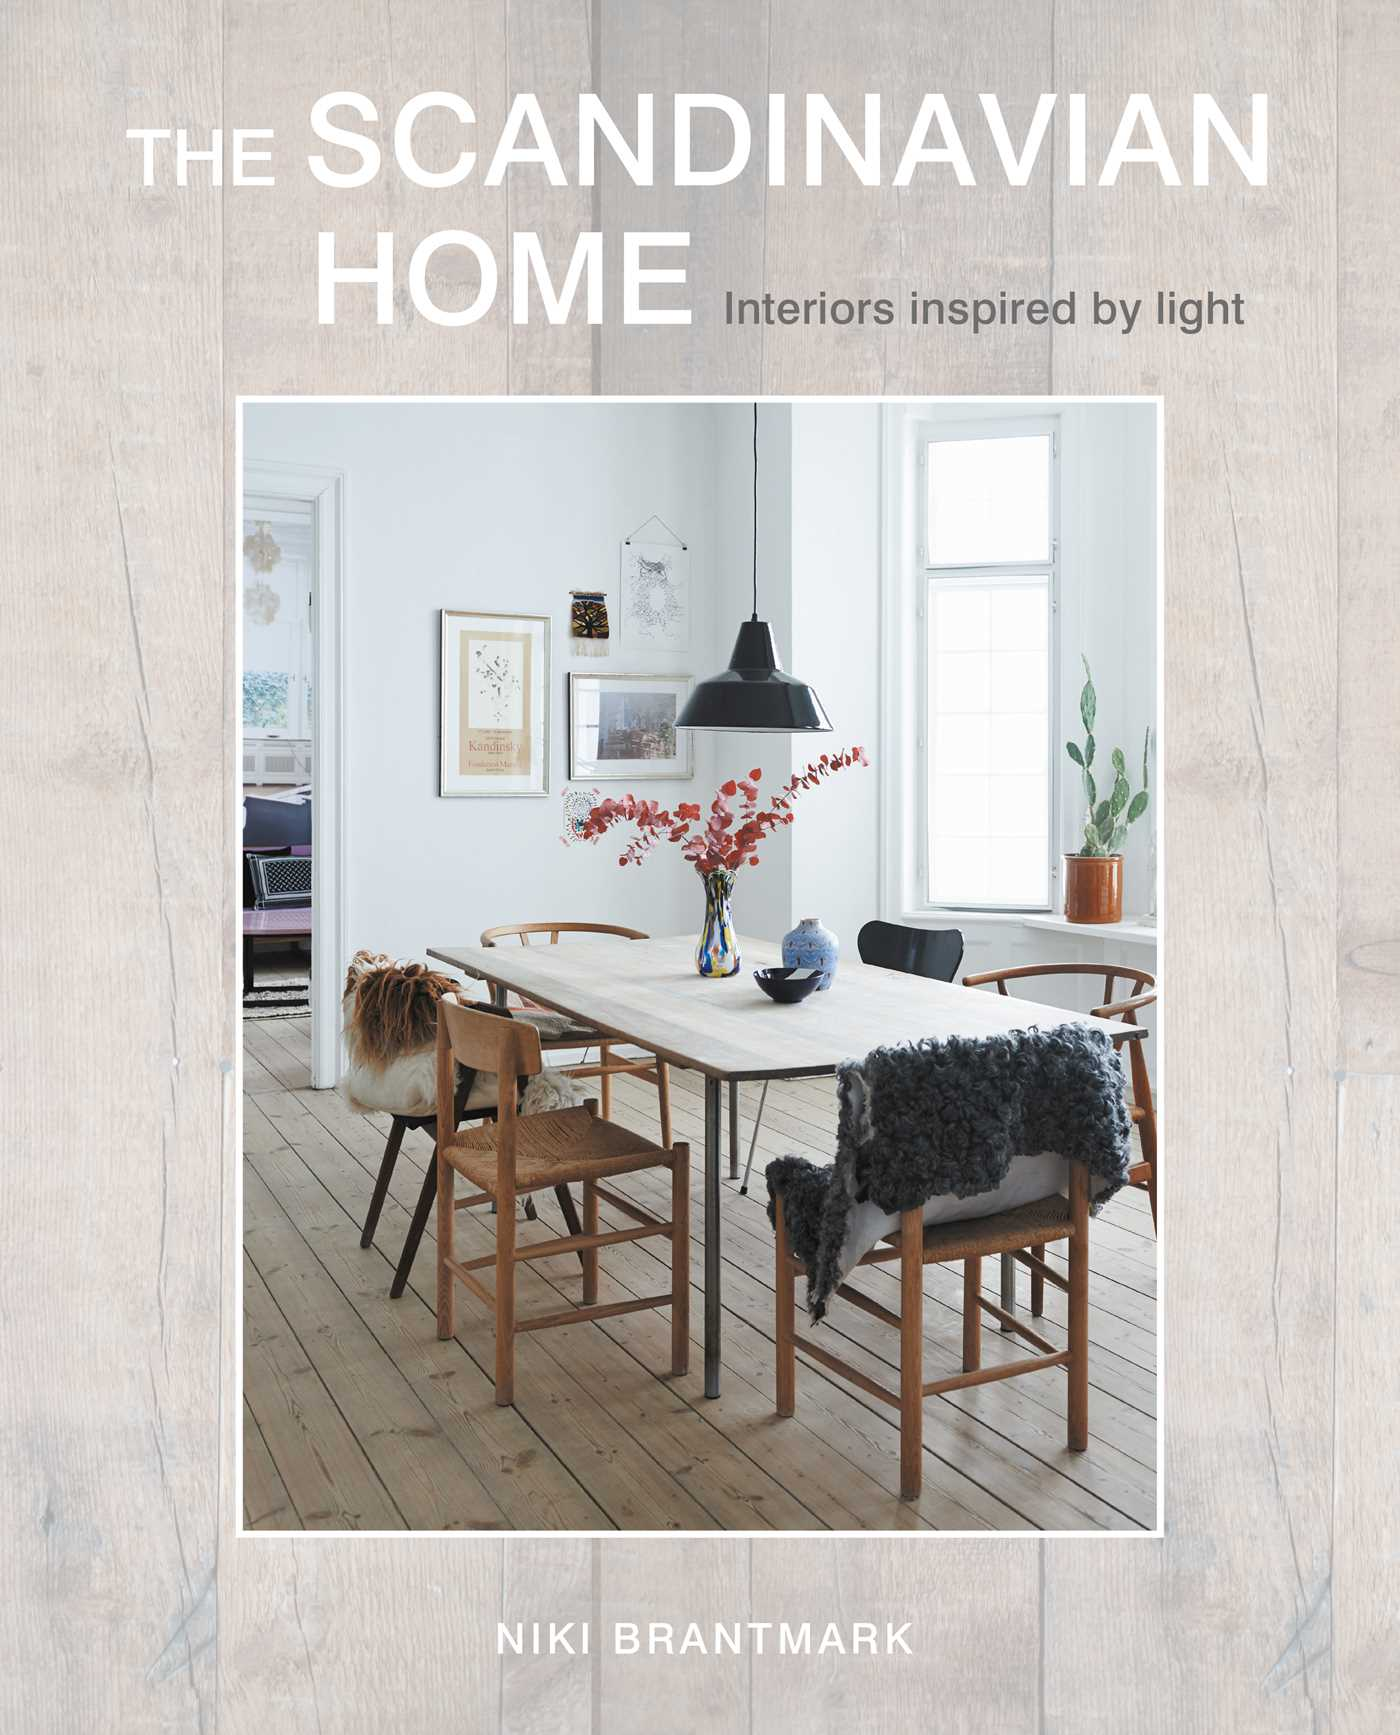 The scandinavian home book by niki brantmark official publisher page simon schuster - Scandinavian design book ...